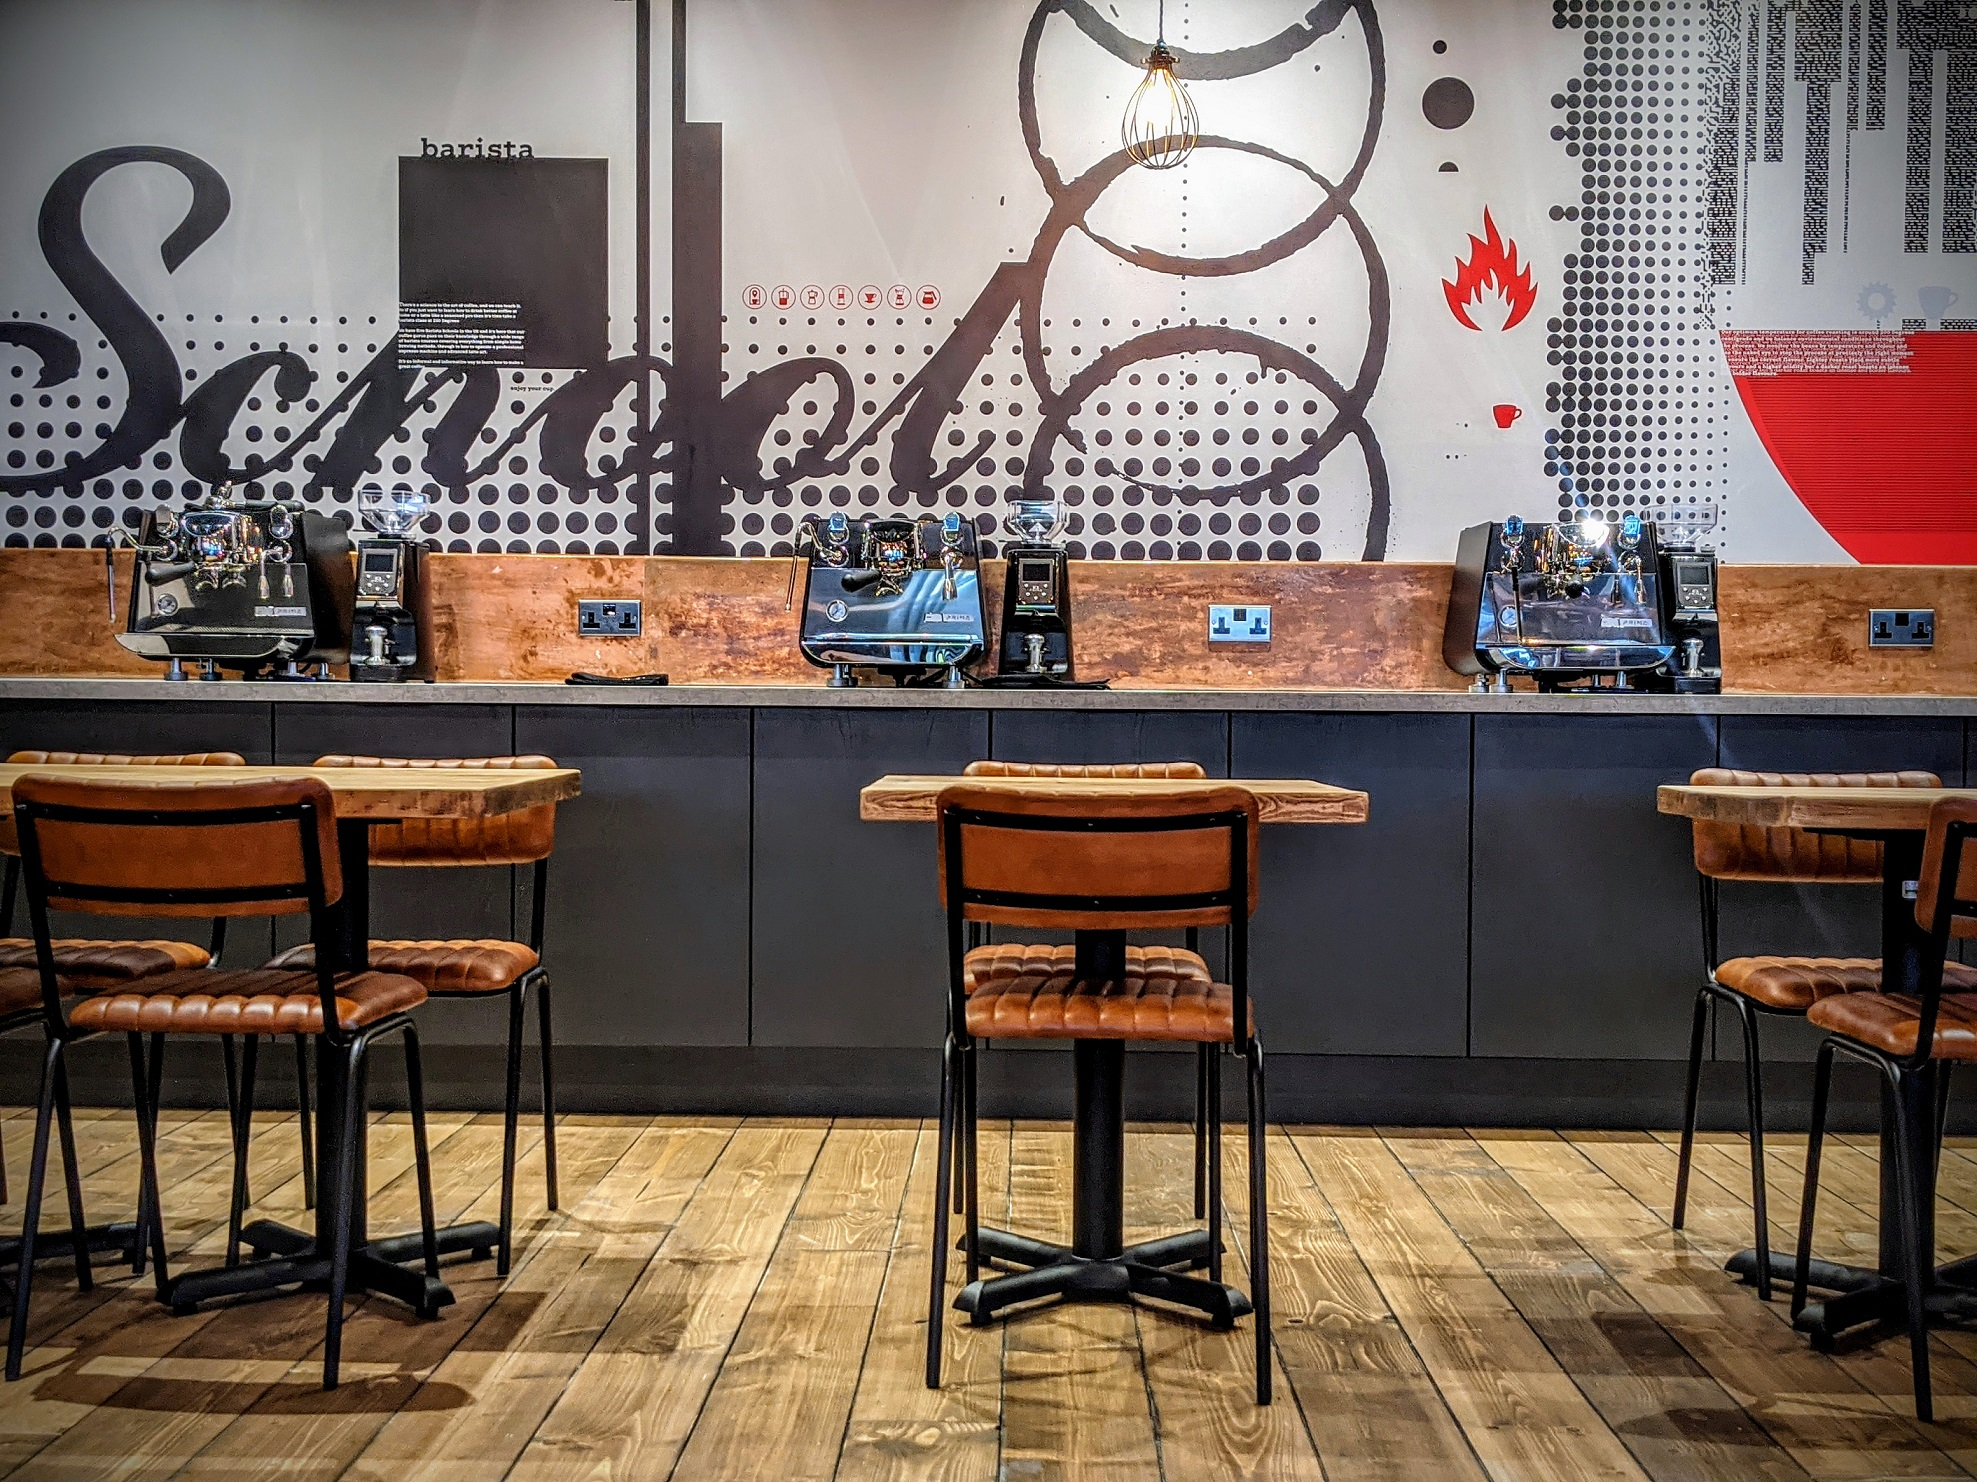 200 Degrees Coffee opens its new coffee shop in Manchester